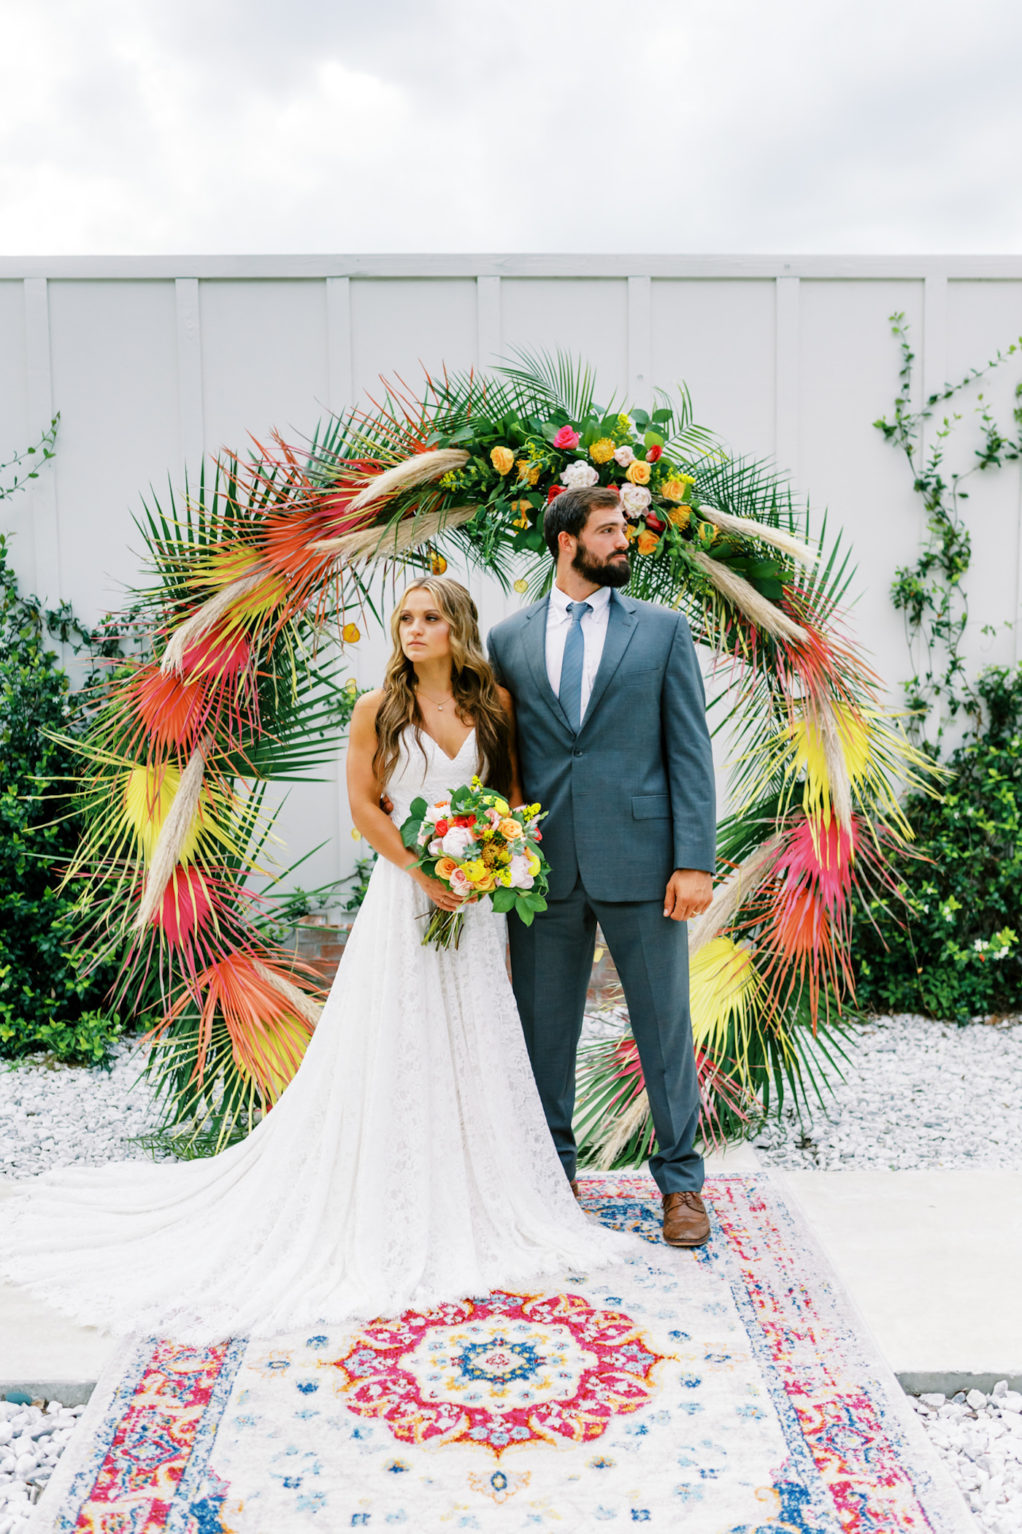 Tropical Florida Citrus Wedding Inspiration | Orange and Yellow Painted Palm Frond Leaf Round Moon Arch Ceremony Backdrop with Pampas Grass and Hanging Orange Slices | Bright Colorful Floral Arrangement with Orange and Pink Roses and Yellow Pincushion Protea | Ceremony Area Rug | Groom in Grey Suit